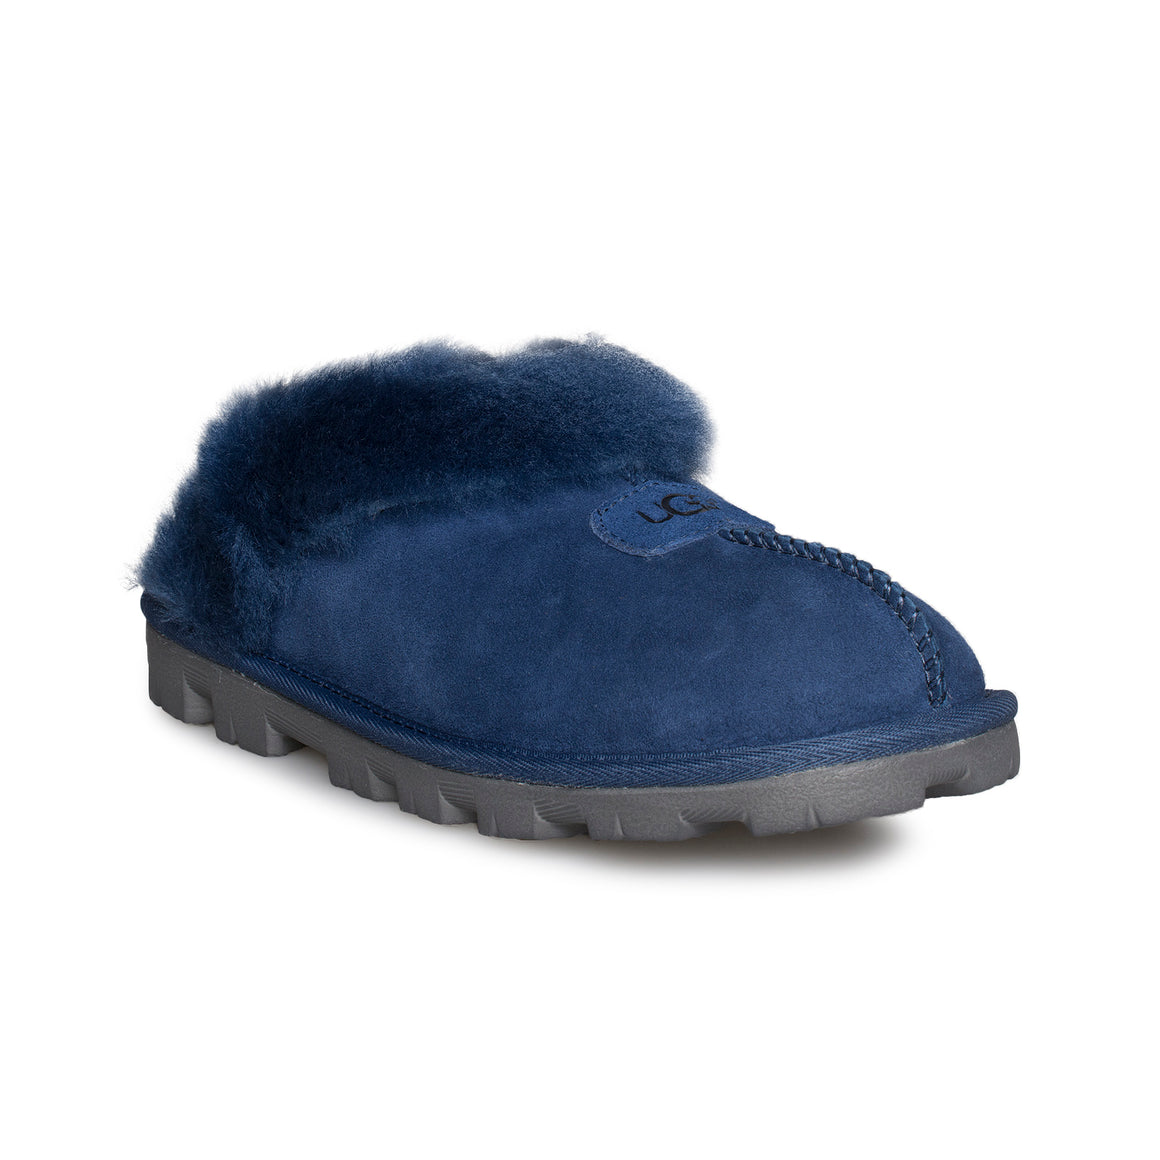 UGG Coquette Dark Denim Slippers - Women's